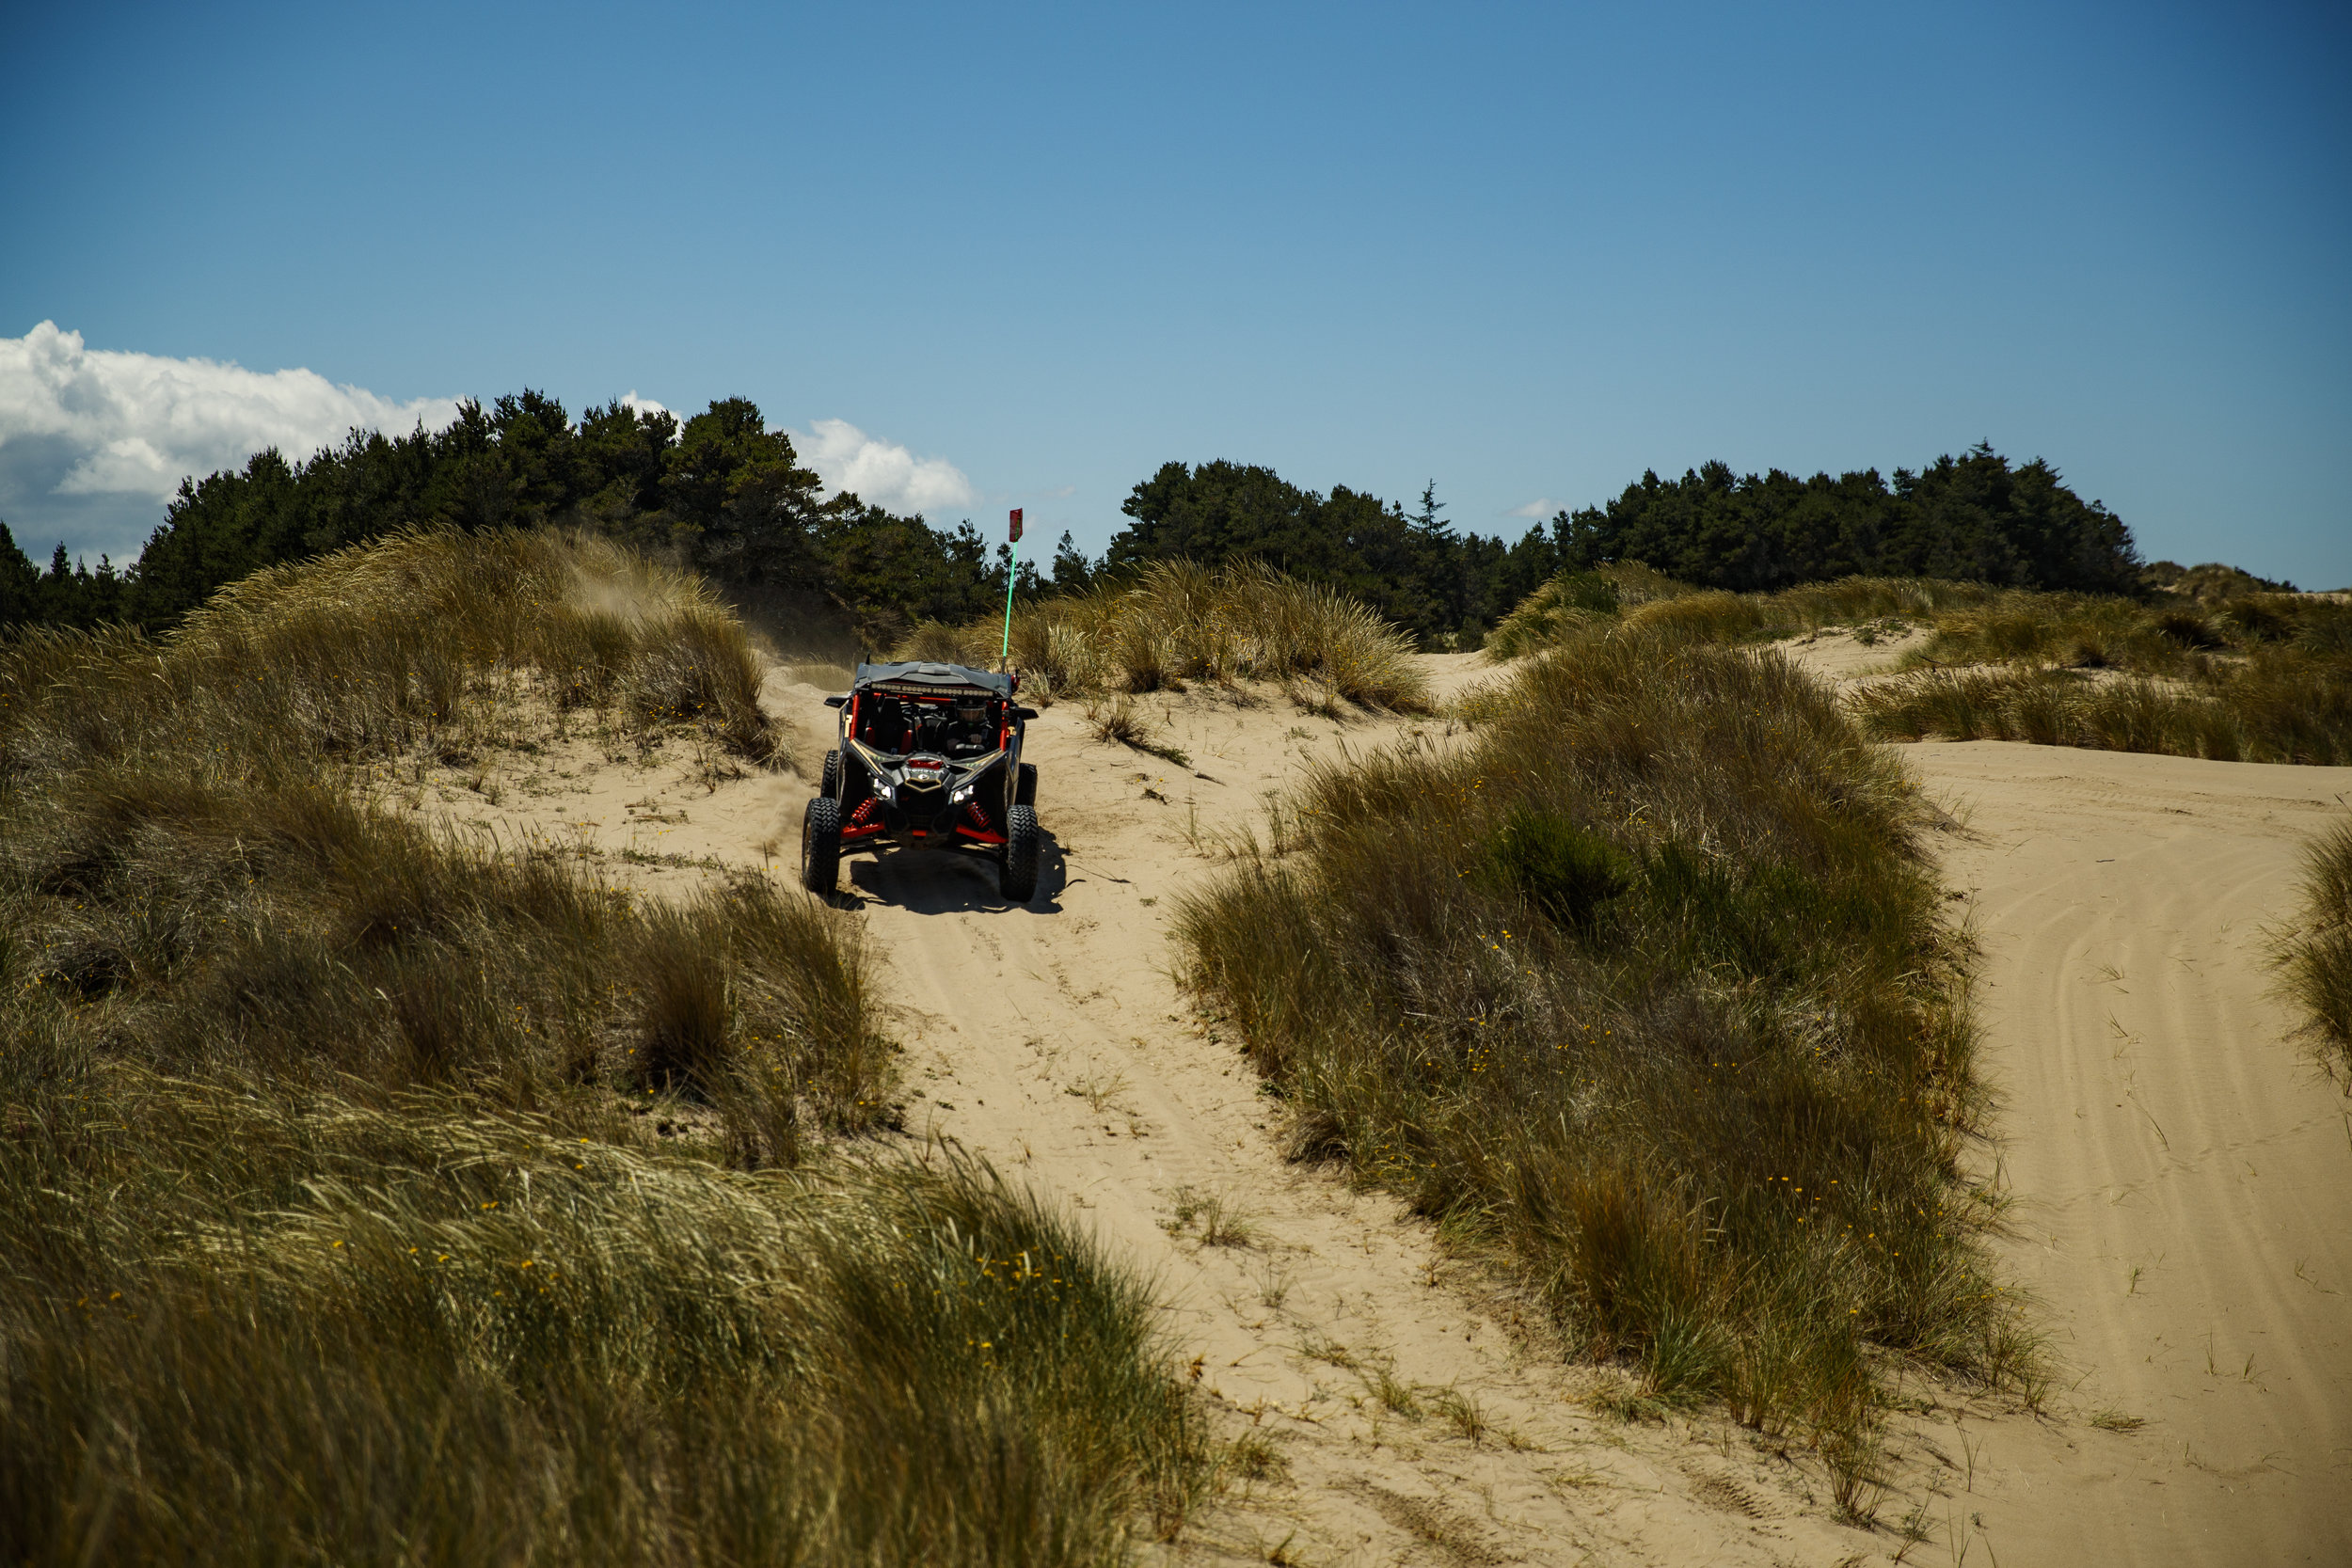 6_29_CaseyCurrie_UTVTakeover_CoosBay_Oregon_Can-Am_003.jpg